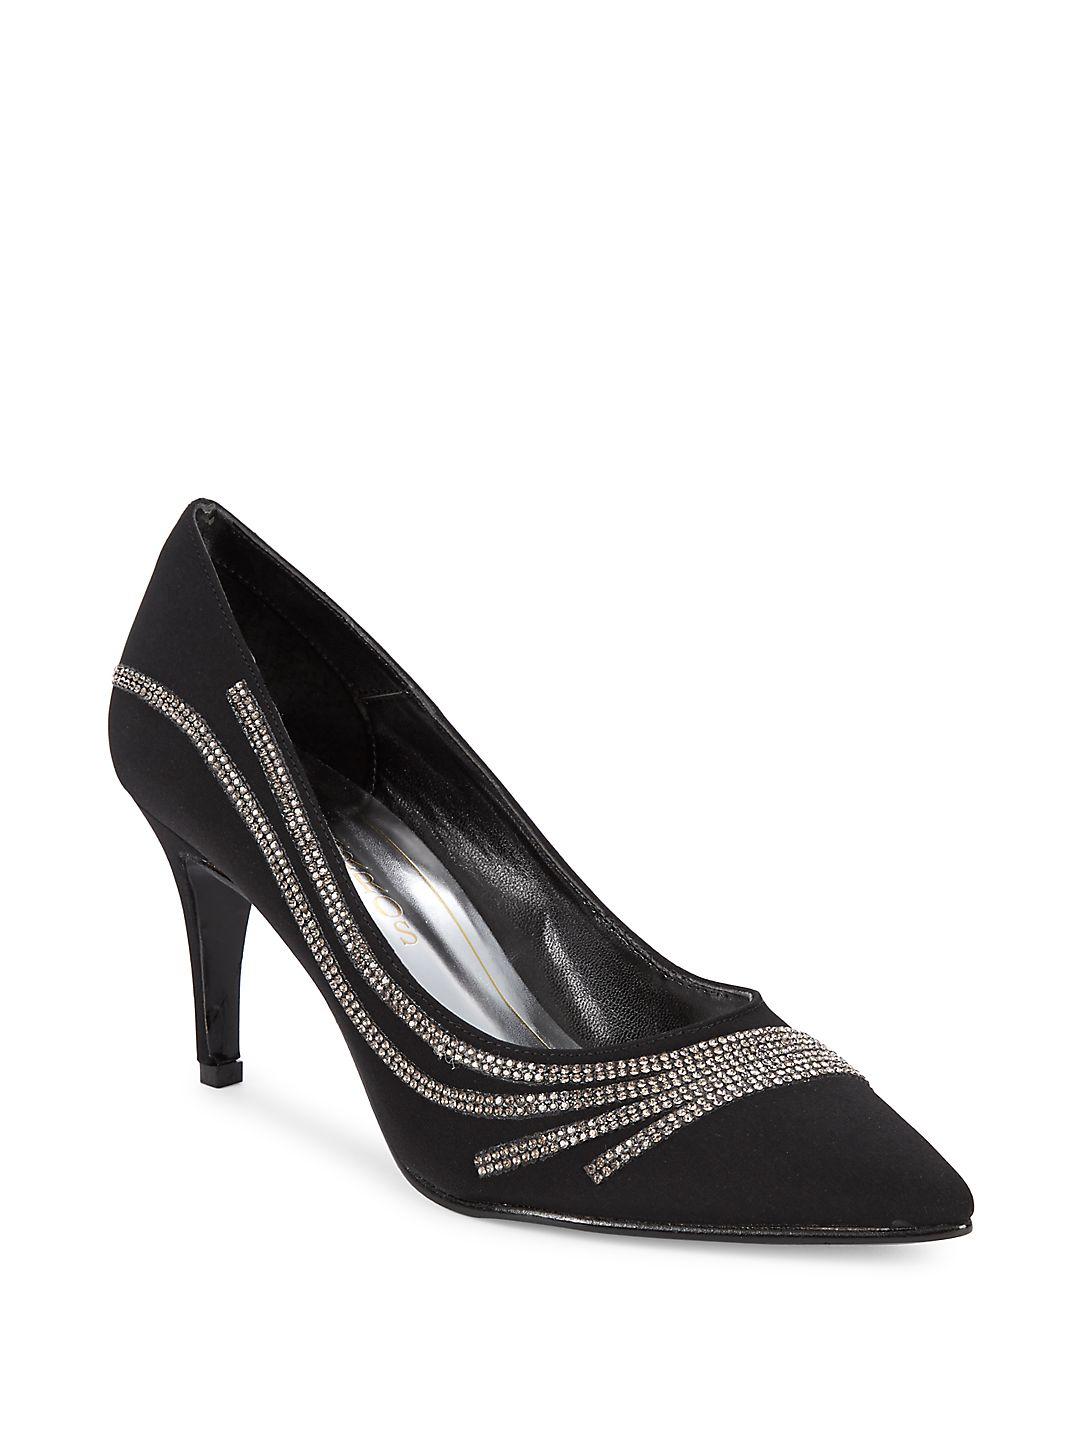 Outright Bejeweled Pumps